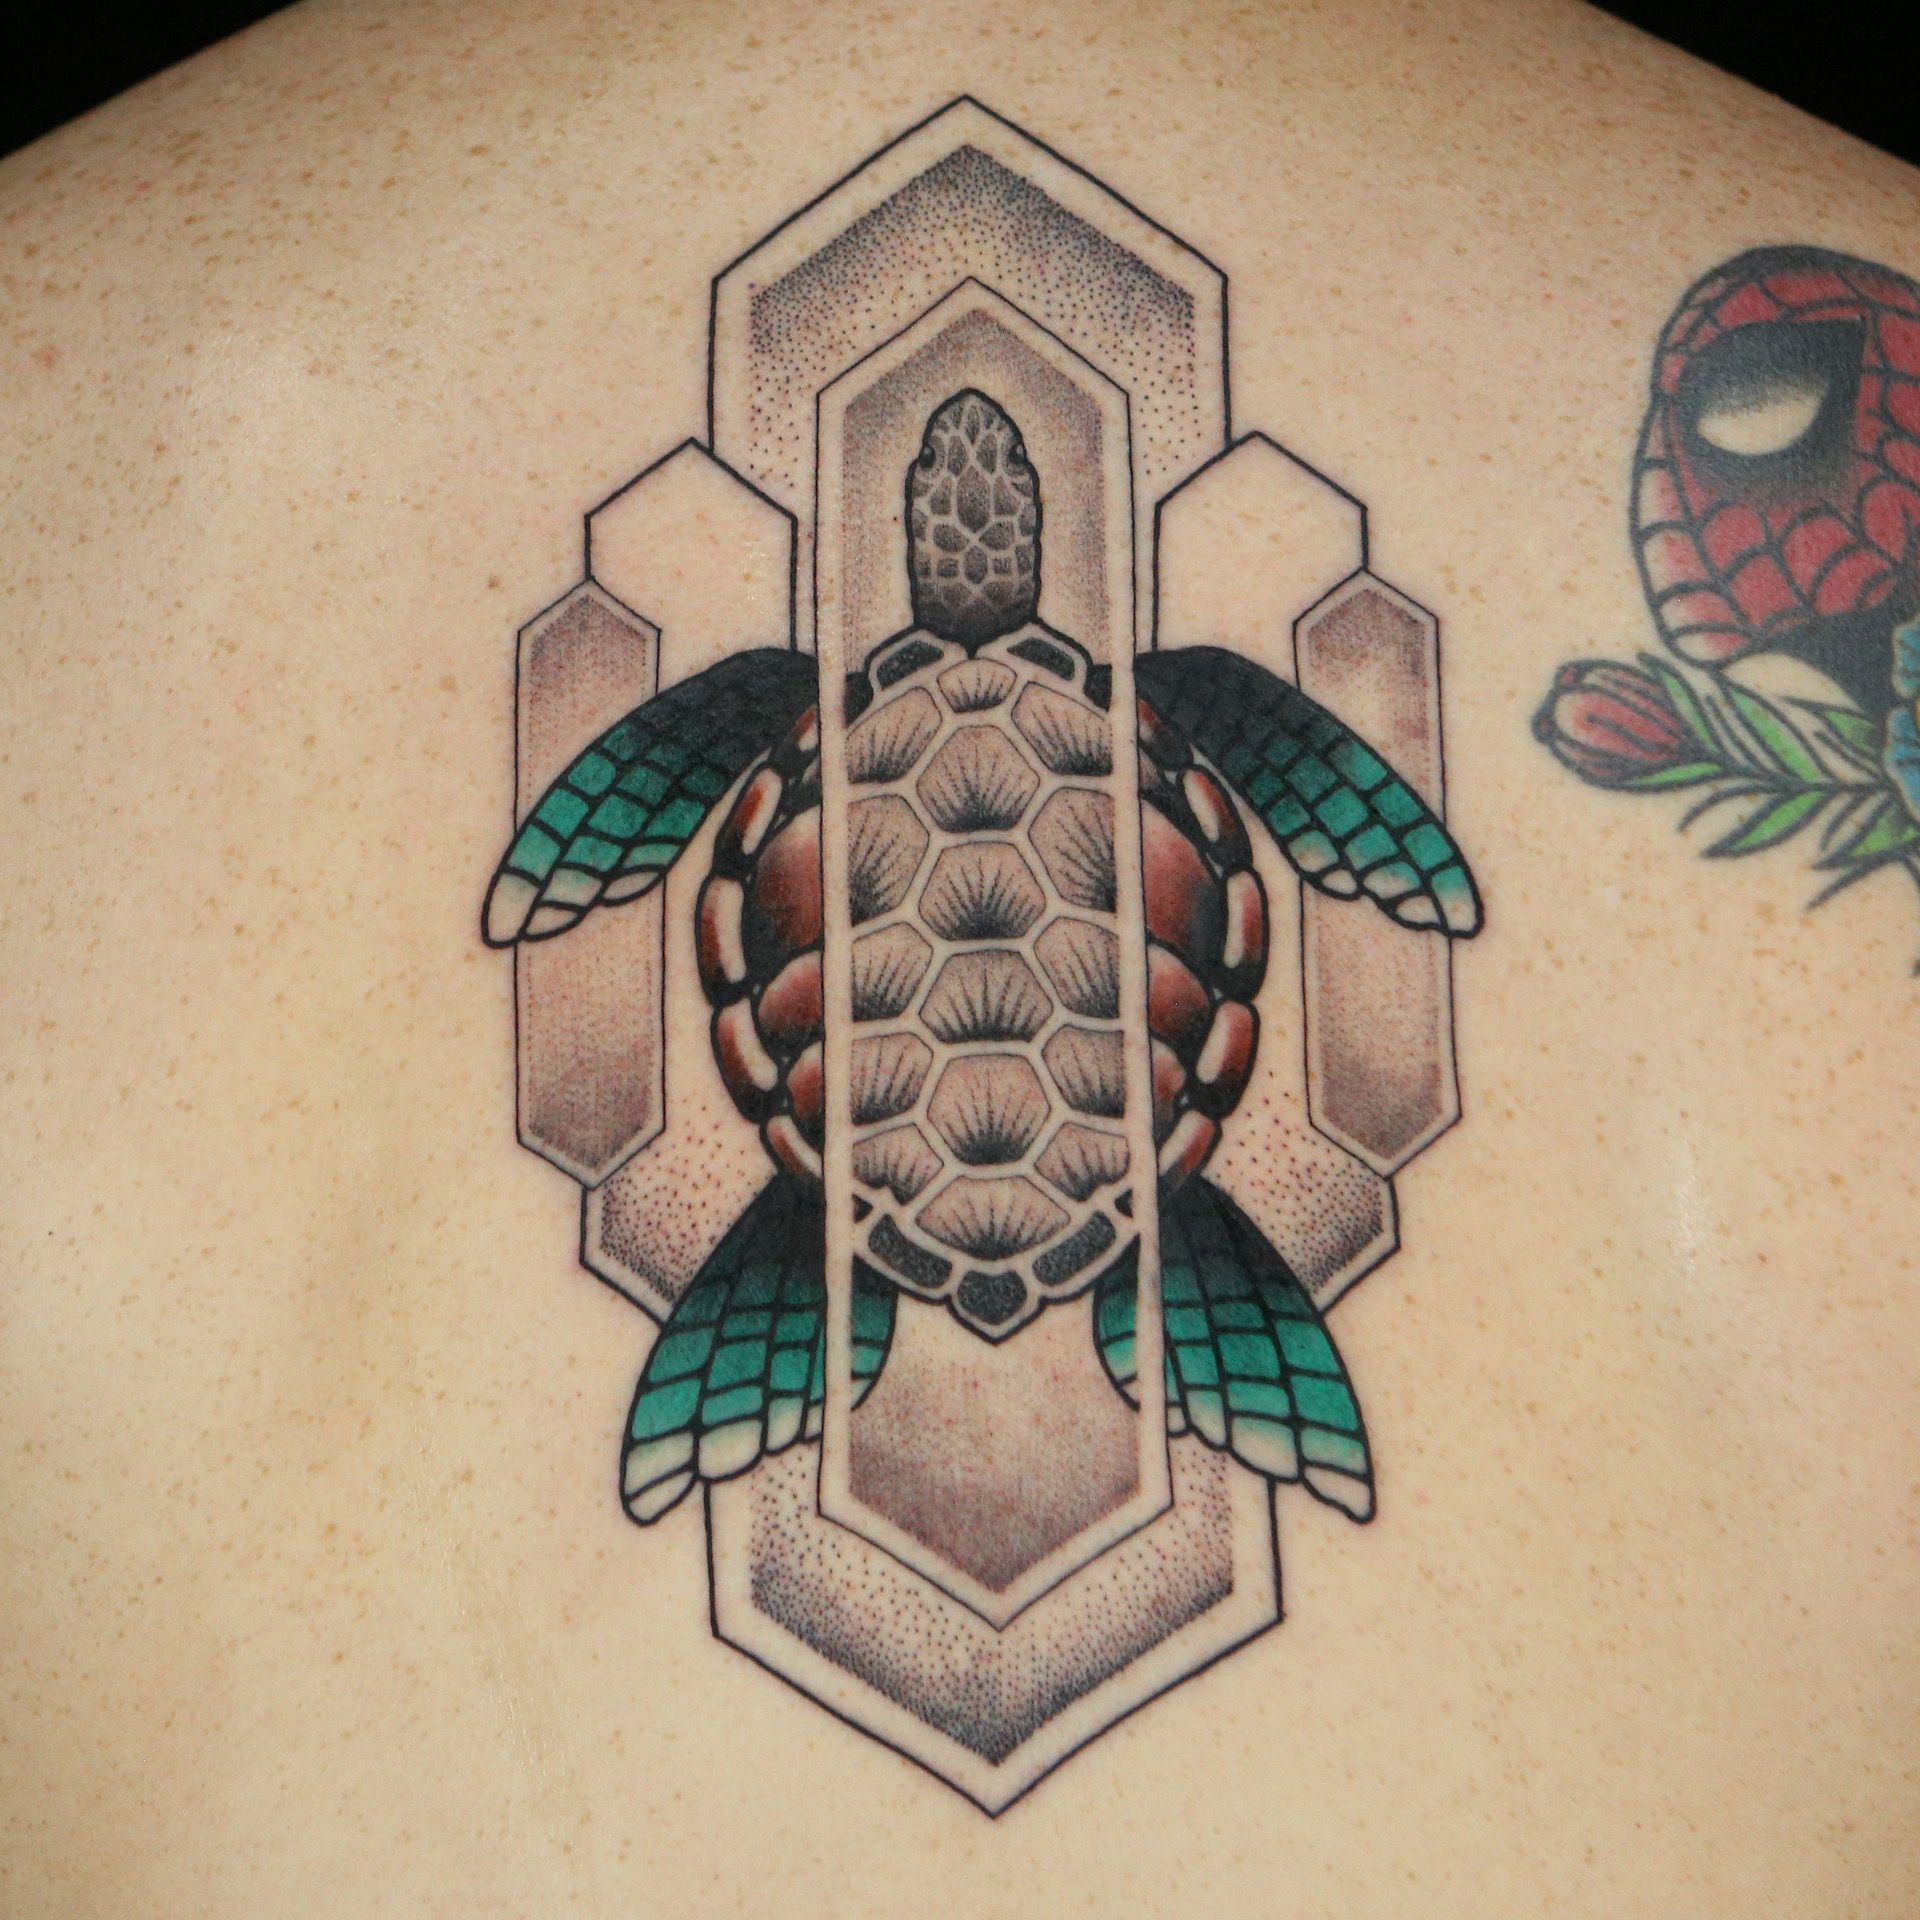 Daniel Silva Ink Master season 10 episode 4